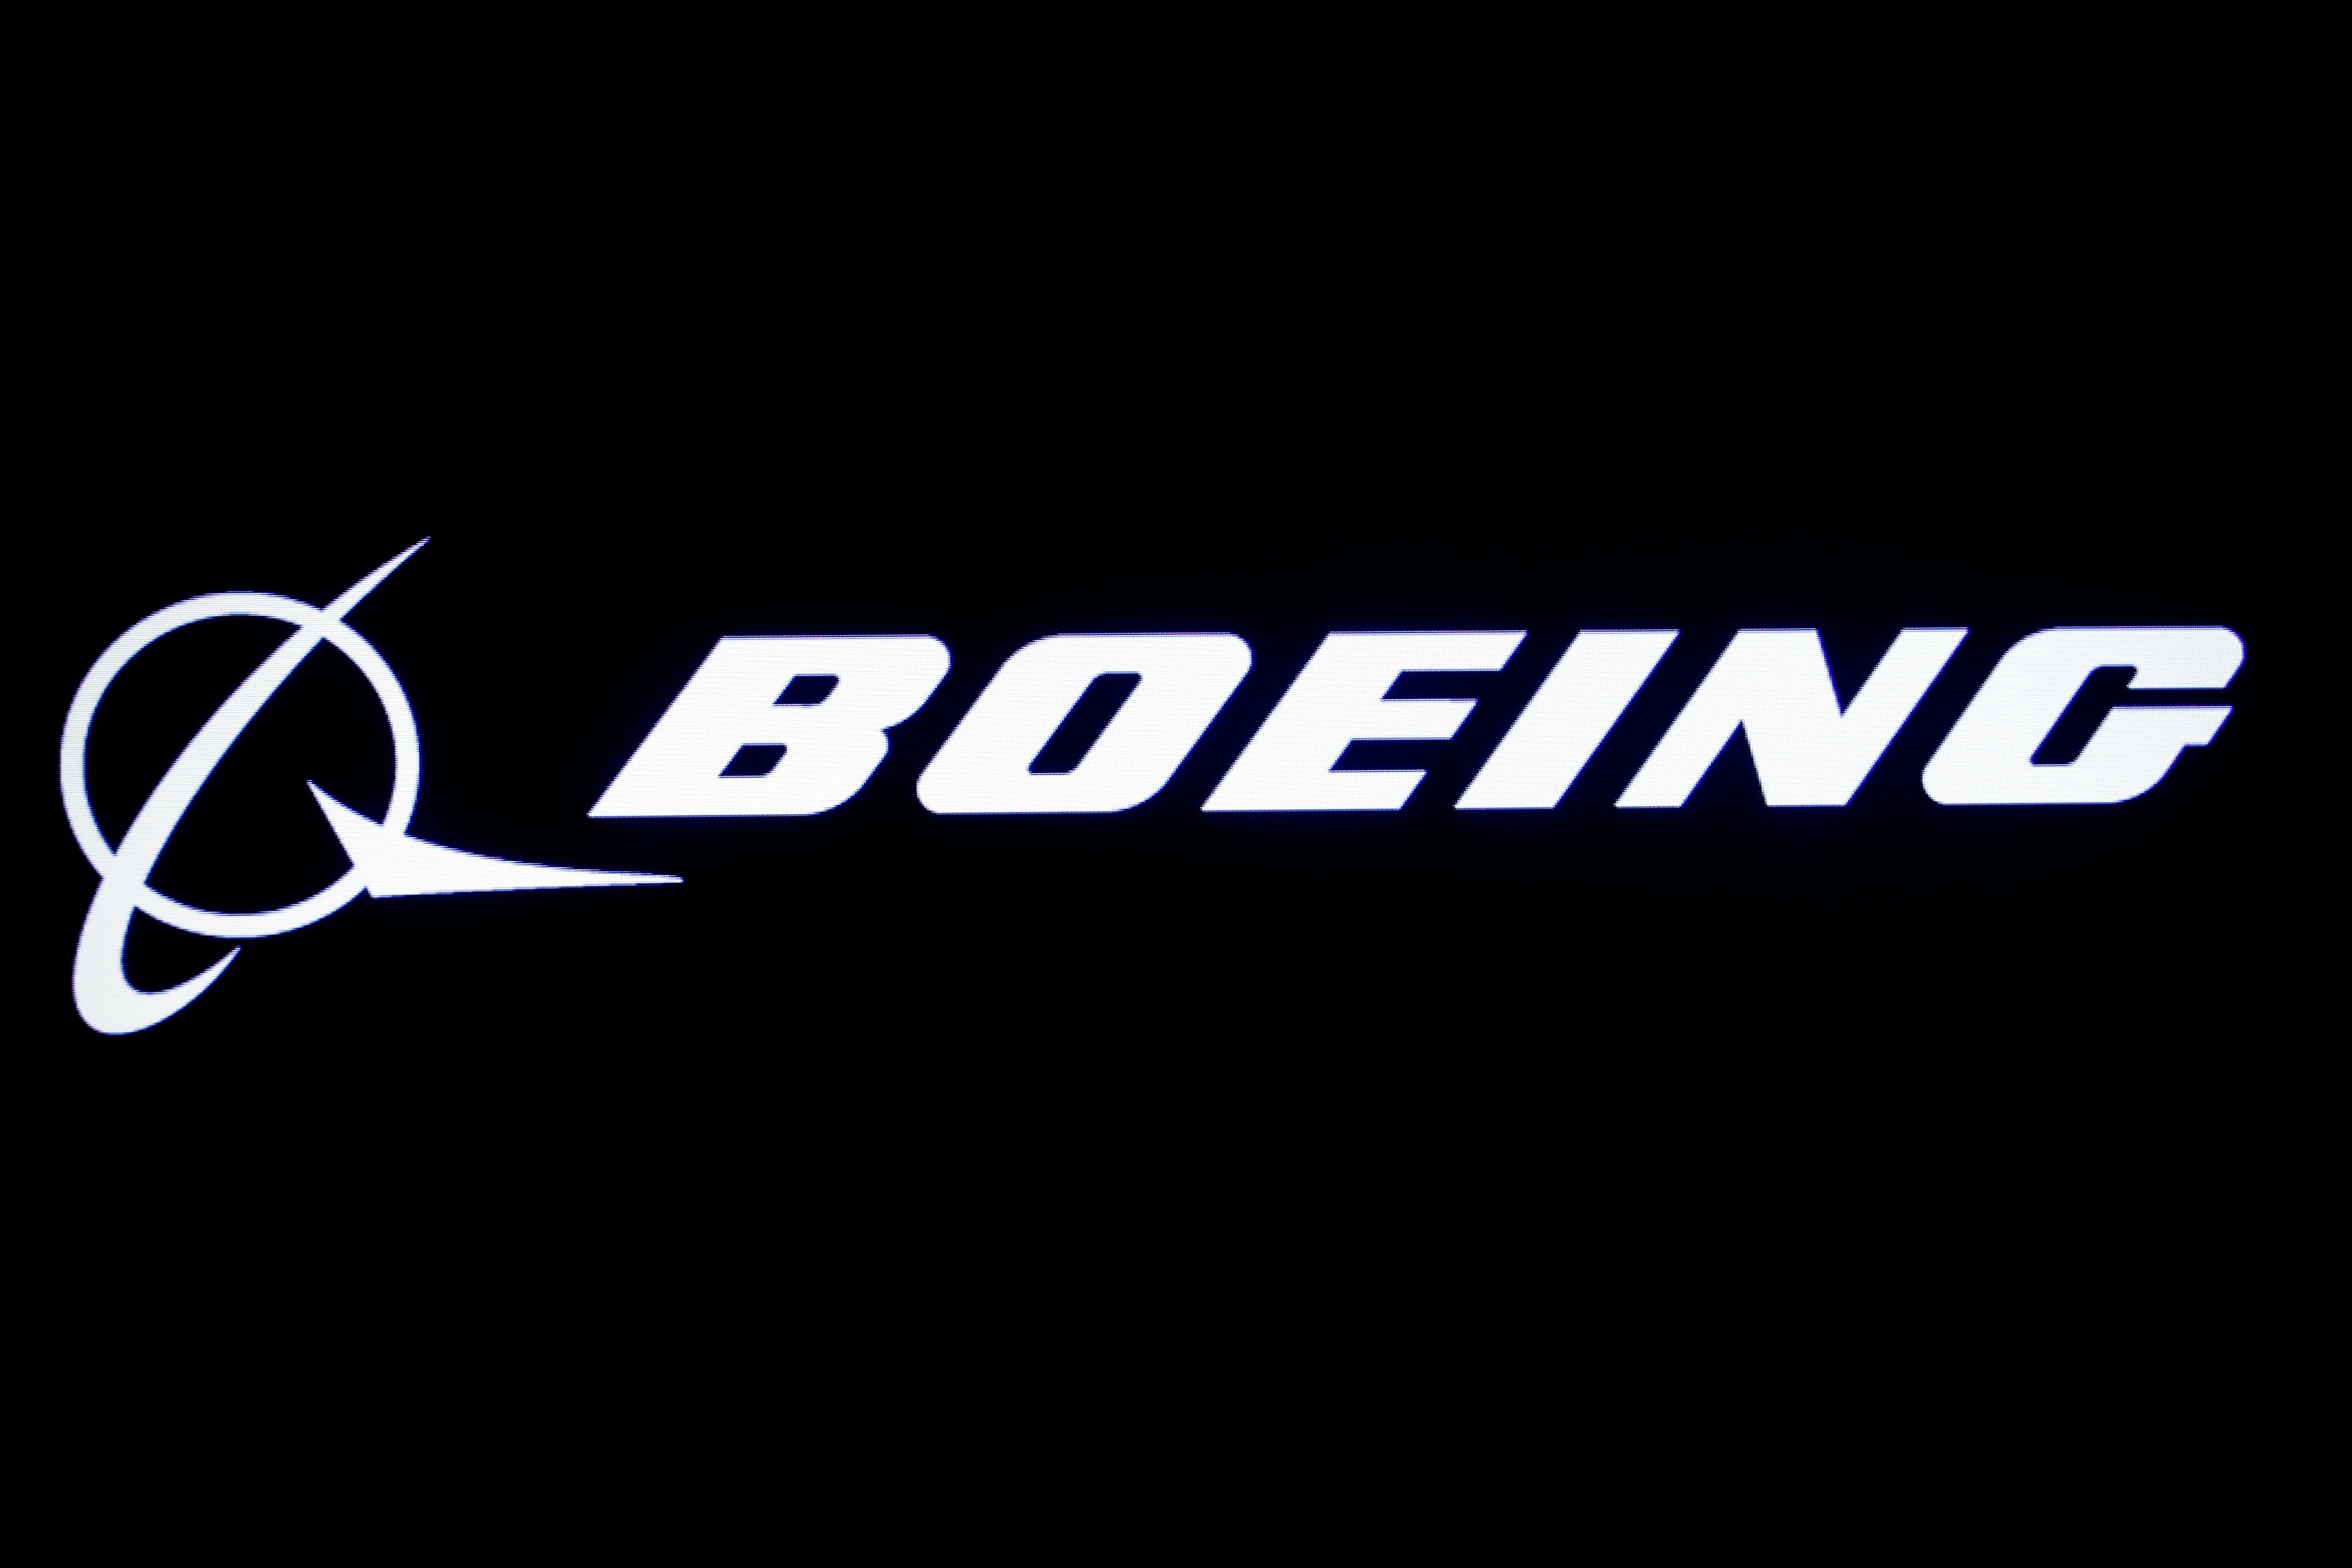 The Boeing logo is displayed on a screen at the New York Stock Exchange (NYSE) in New York, U.S., August 7, 2019. REUTERS/Brendan McDermid